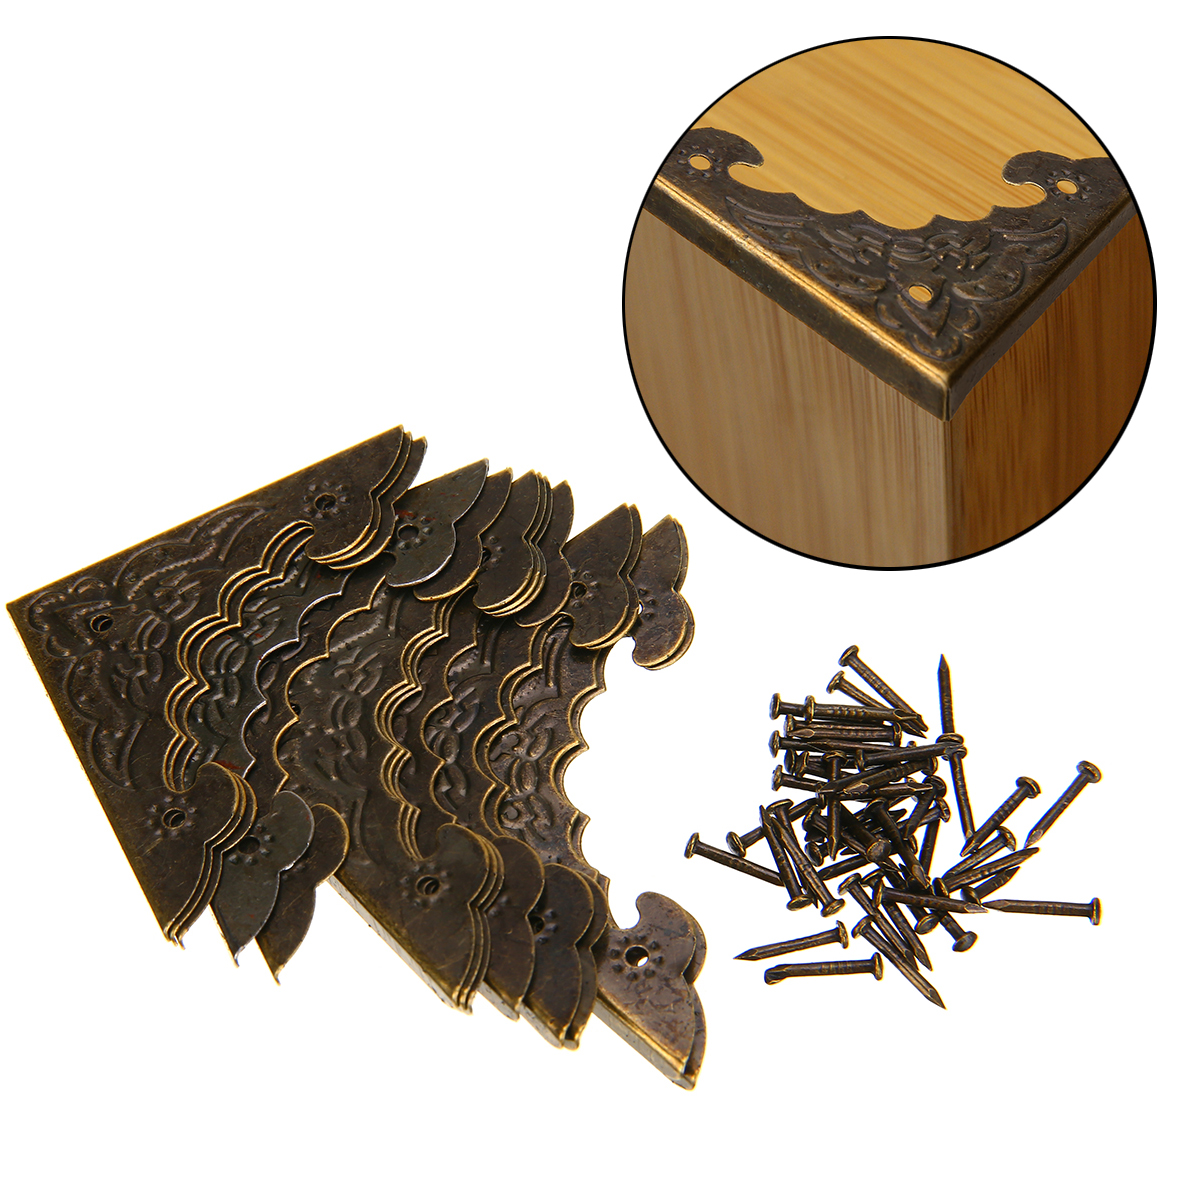 4//12PCS Antique Angle Corner Protectors Wooden Jewelry Case Box Decorative HQ